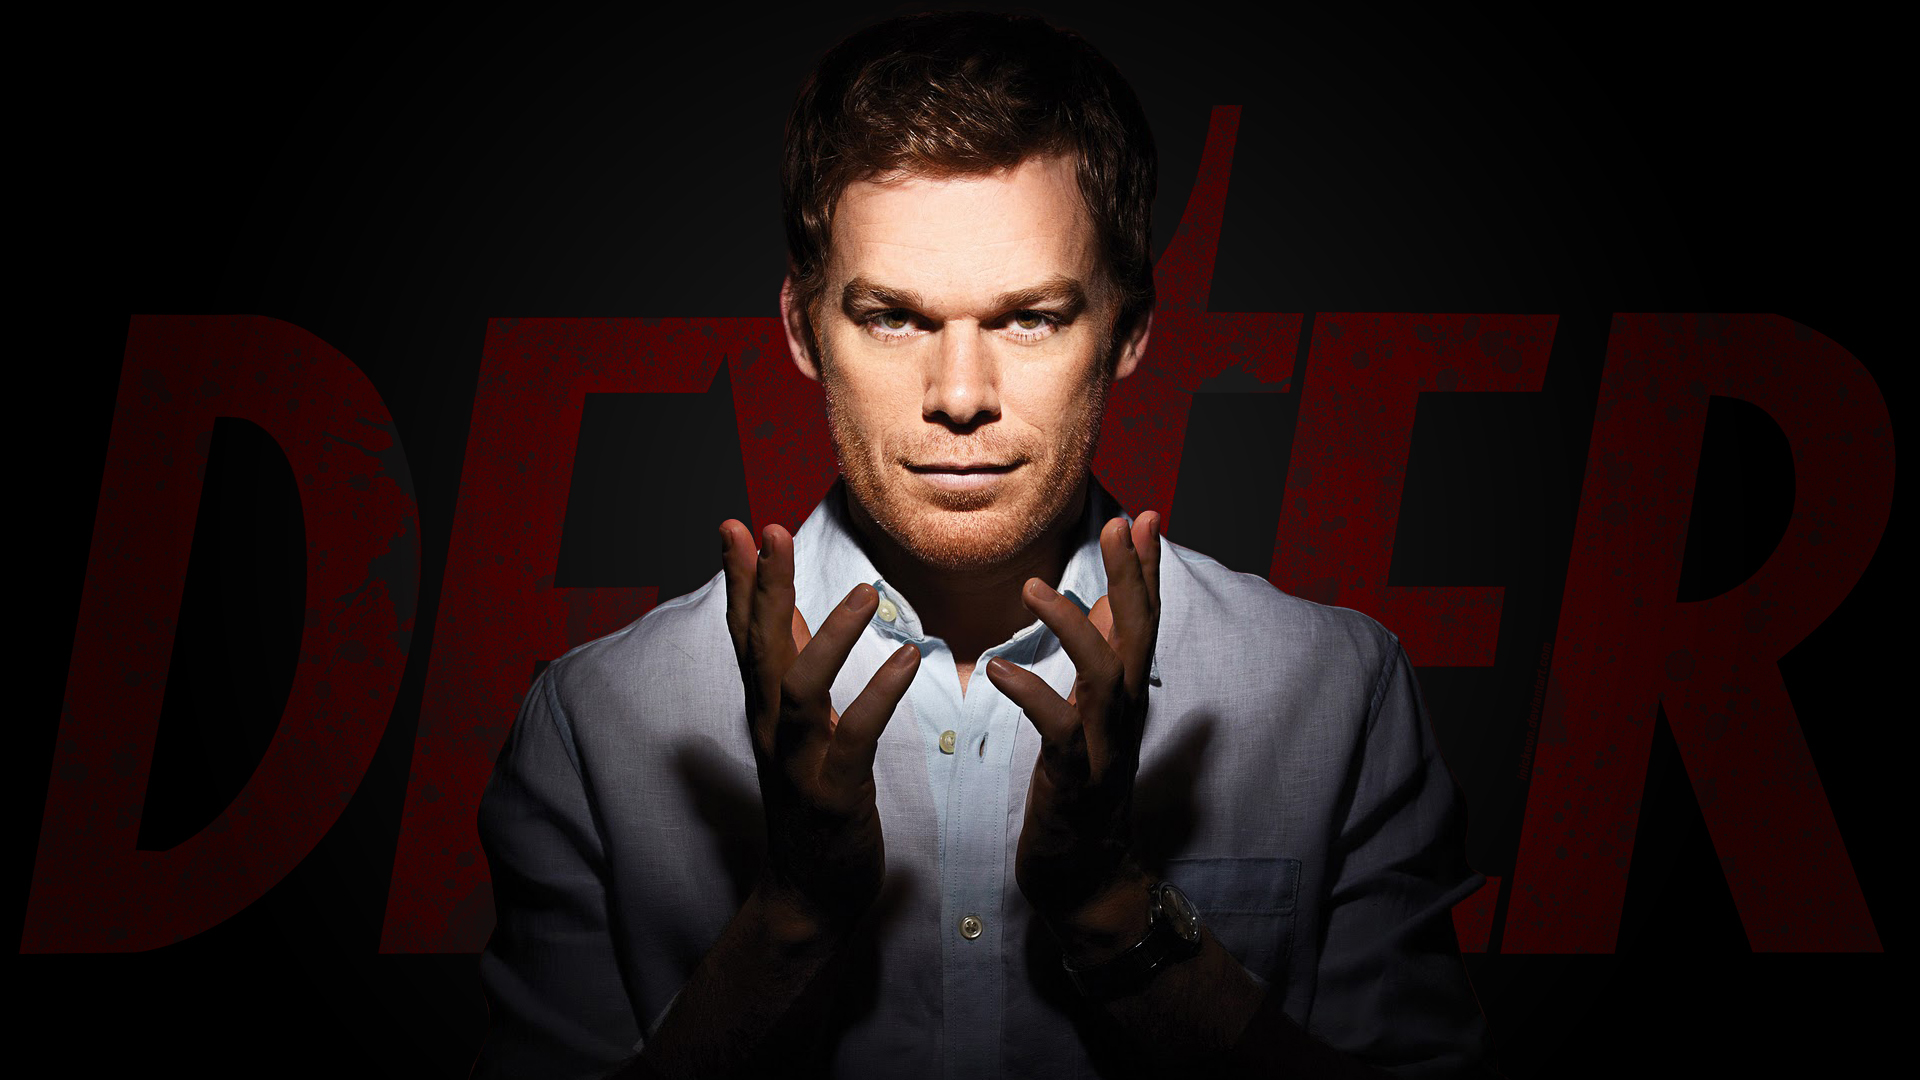 dexter-season-wide-hd-wallpaper-for-desktop-background-download-dexter-images-free